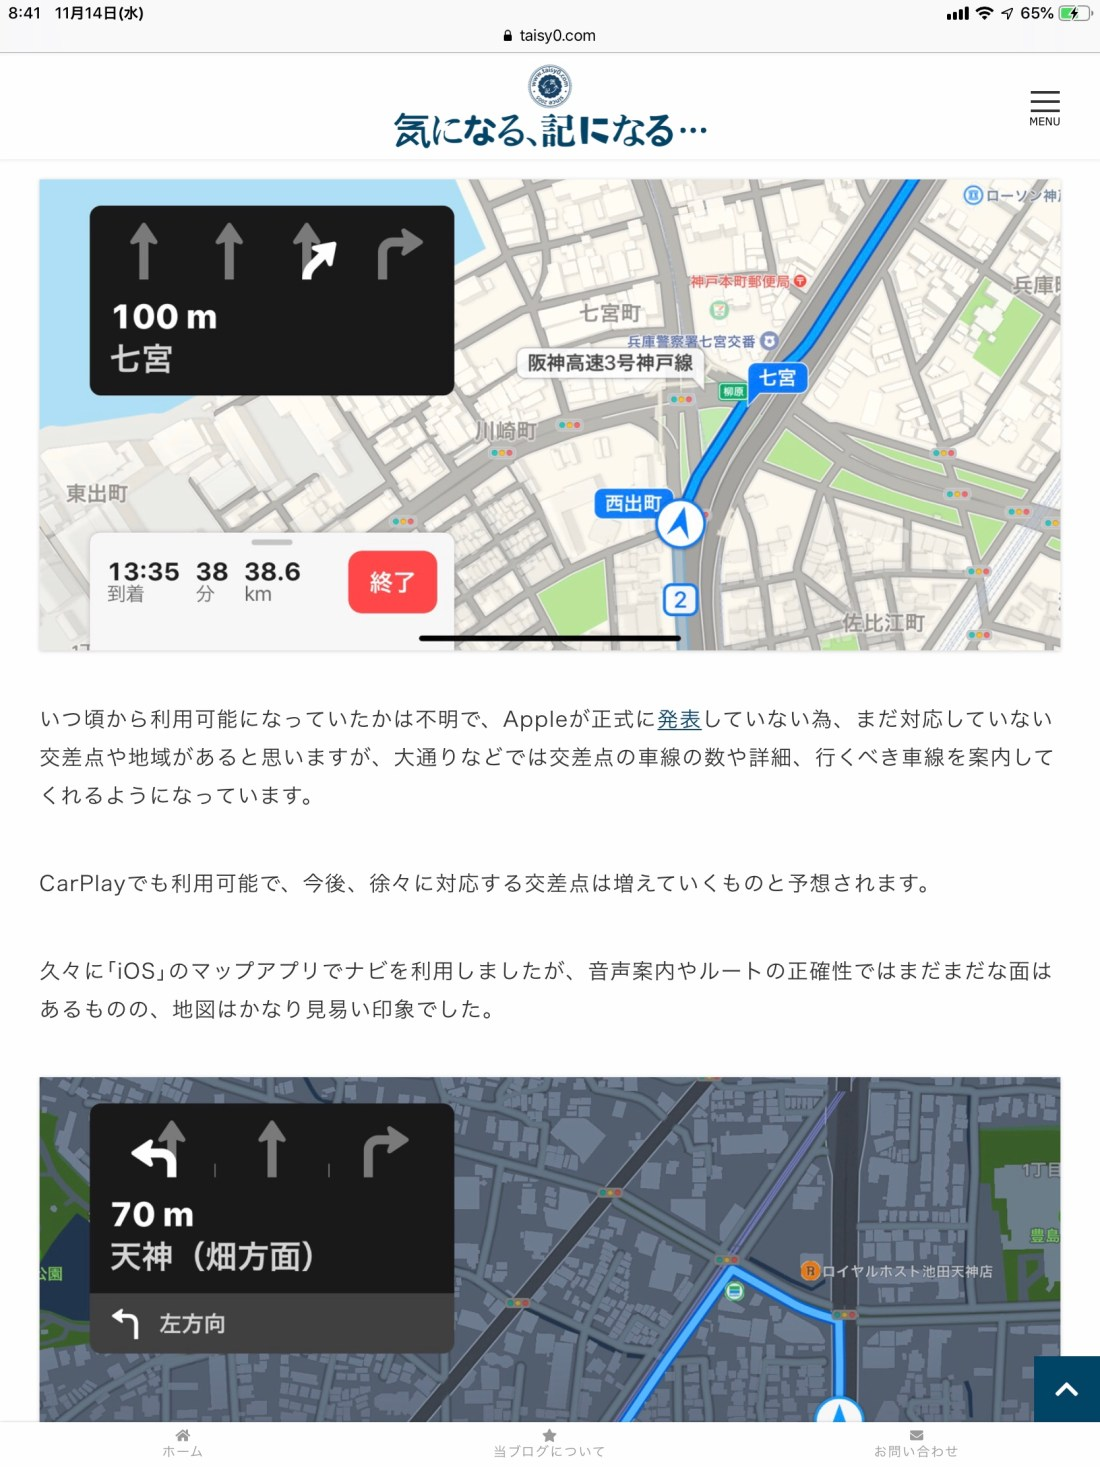 Apple Maps Japan Lane Guidance